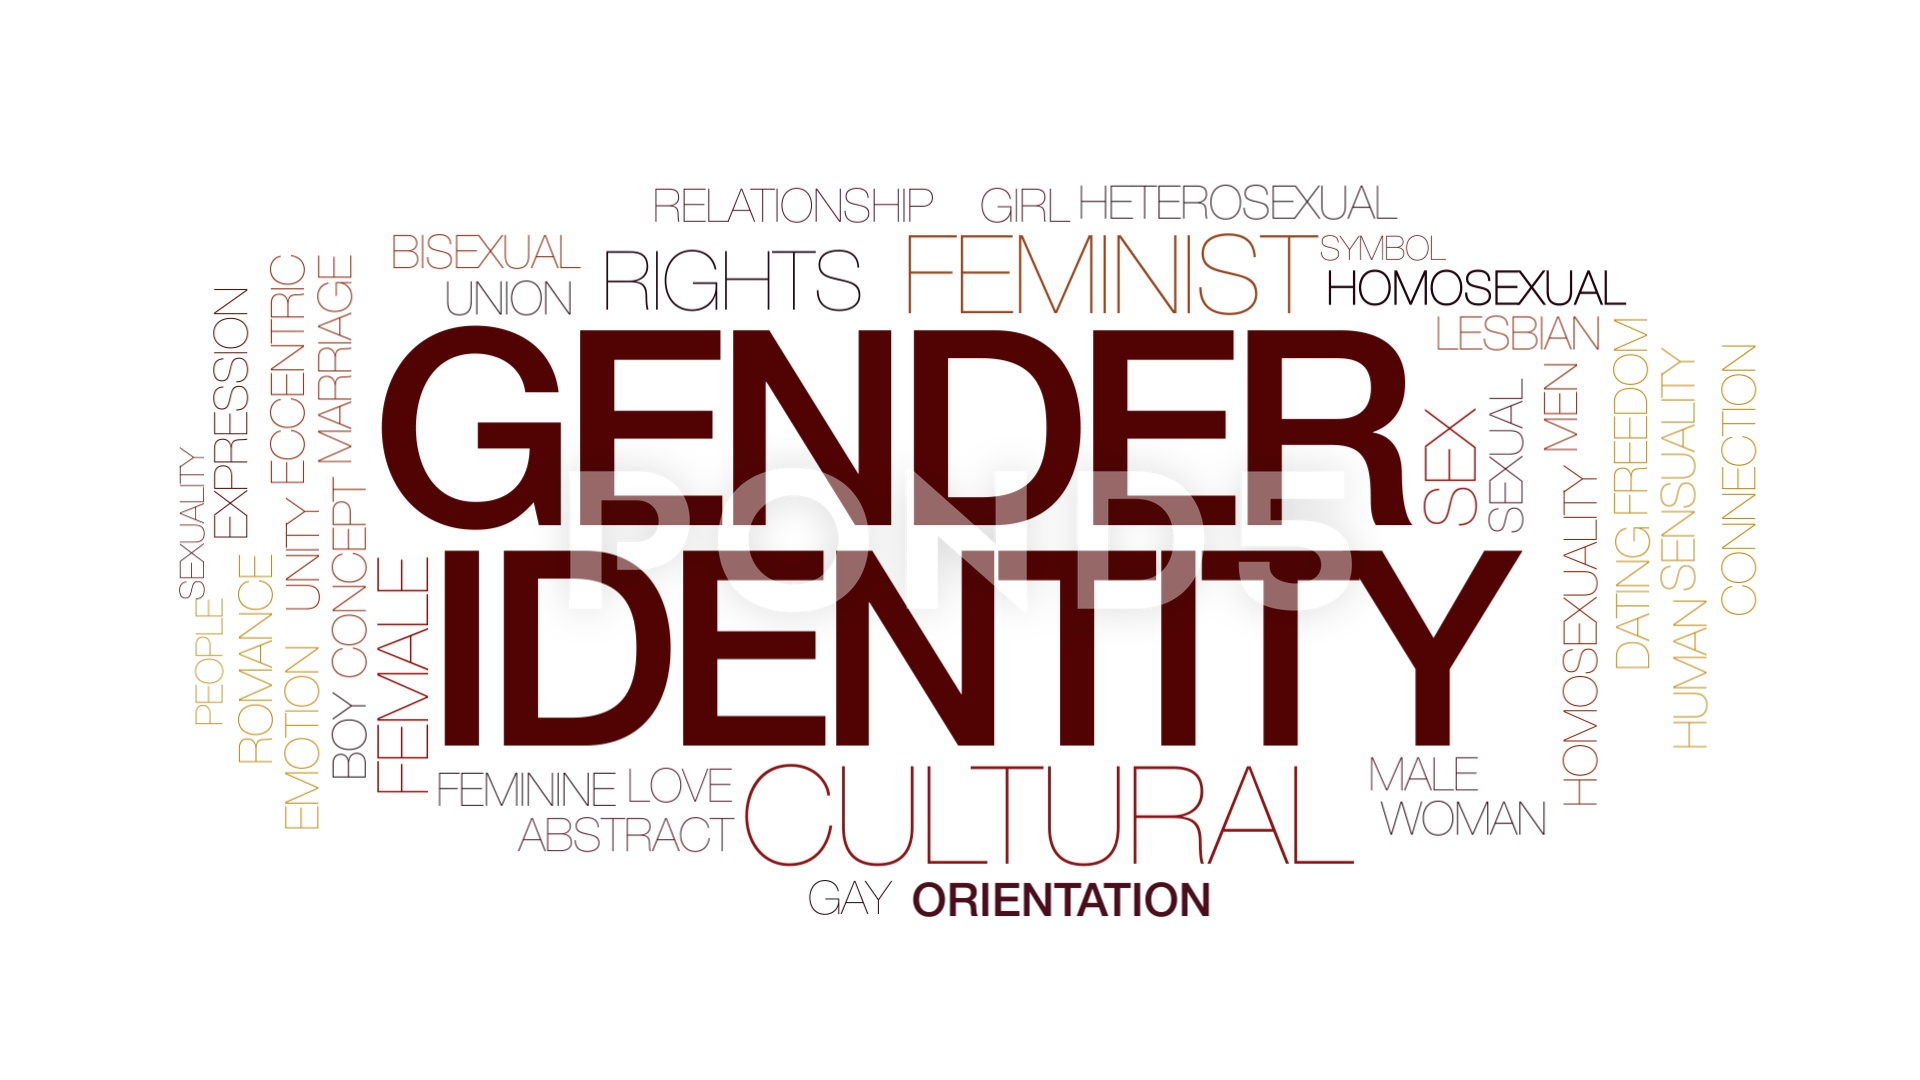 Sexual orientation and gender identity issues in men